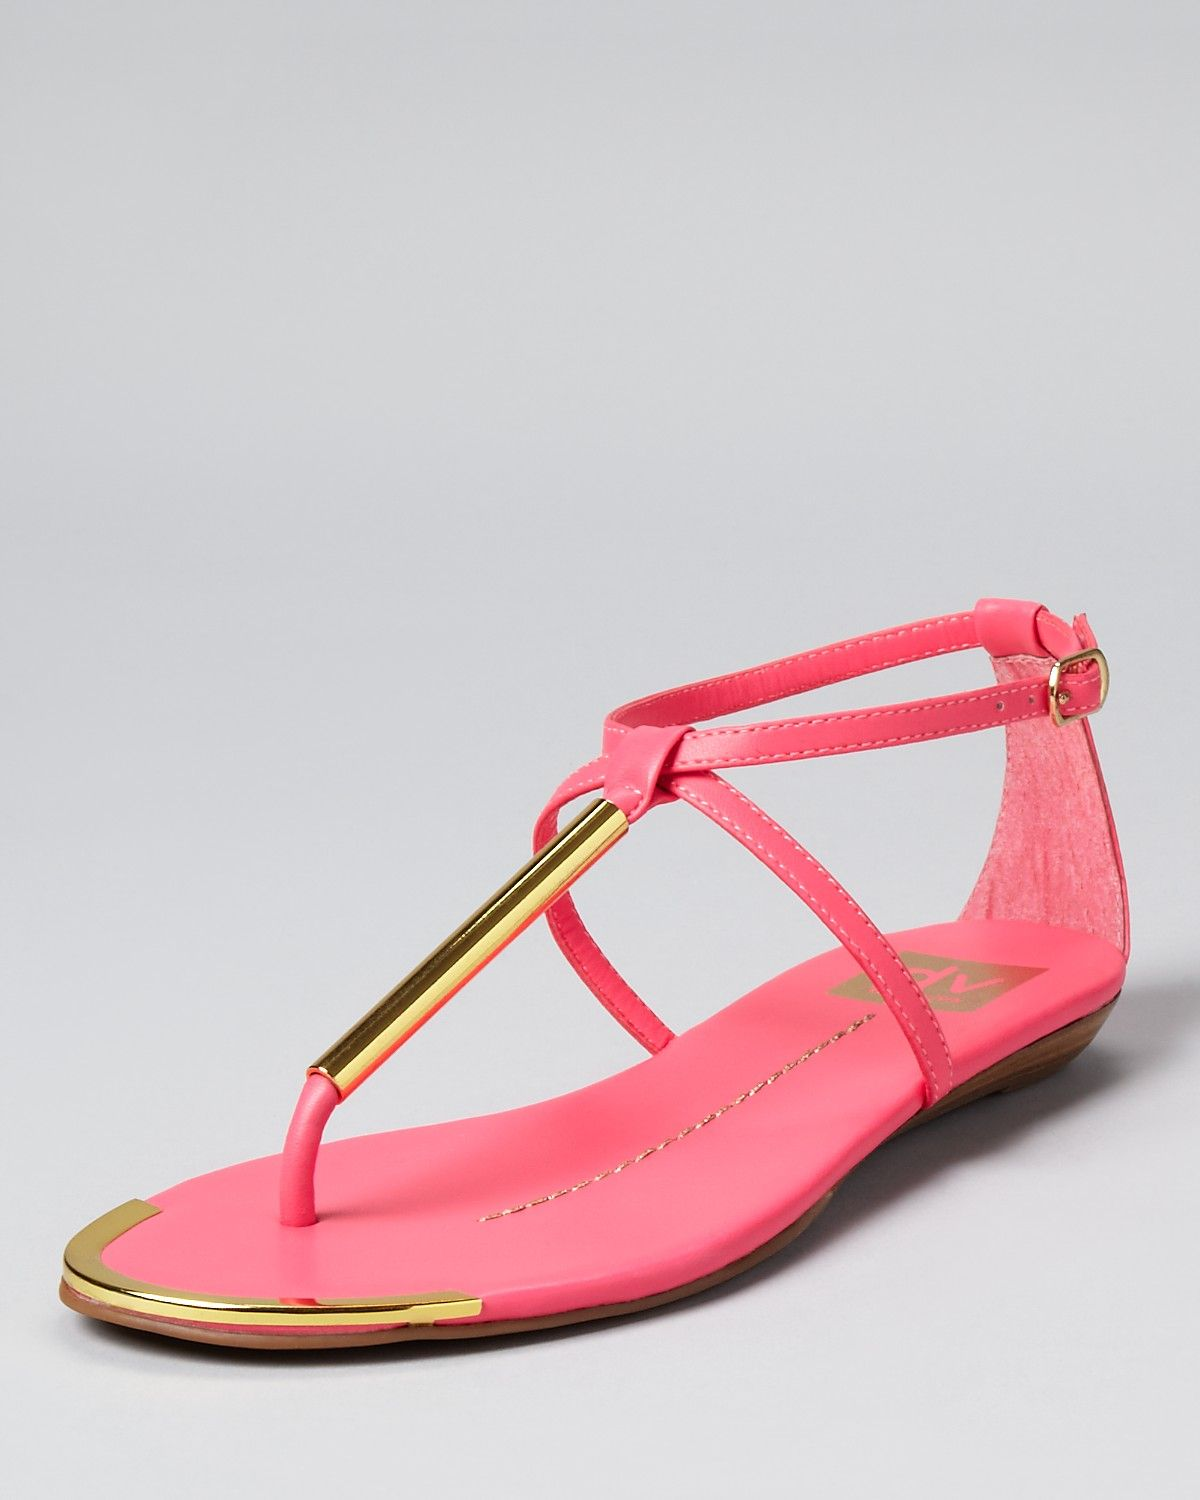 8b8ad21ae948 These Dolce Vita Archer Flat Sandals are a summer must-have!